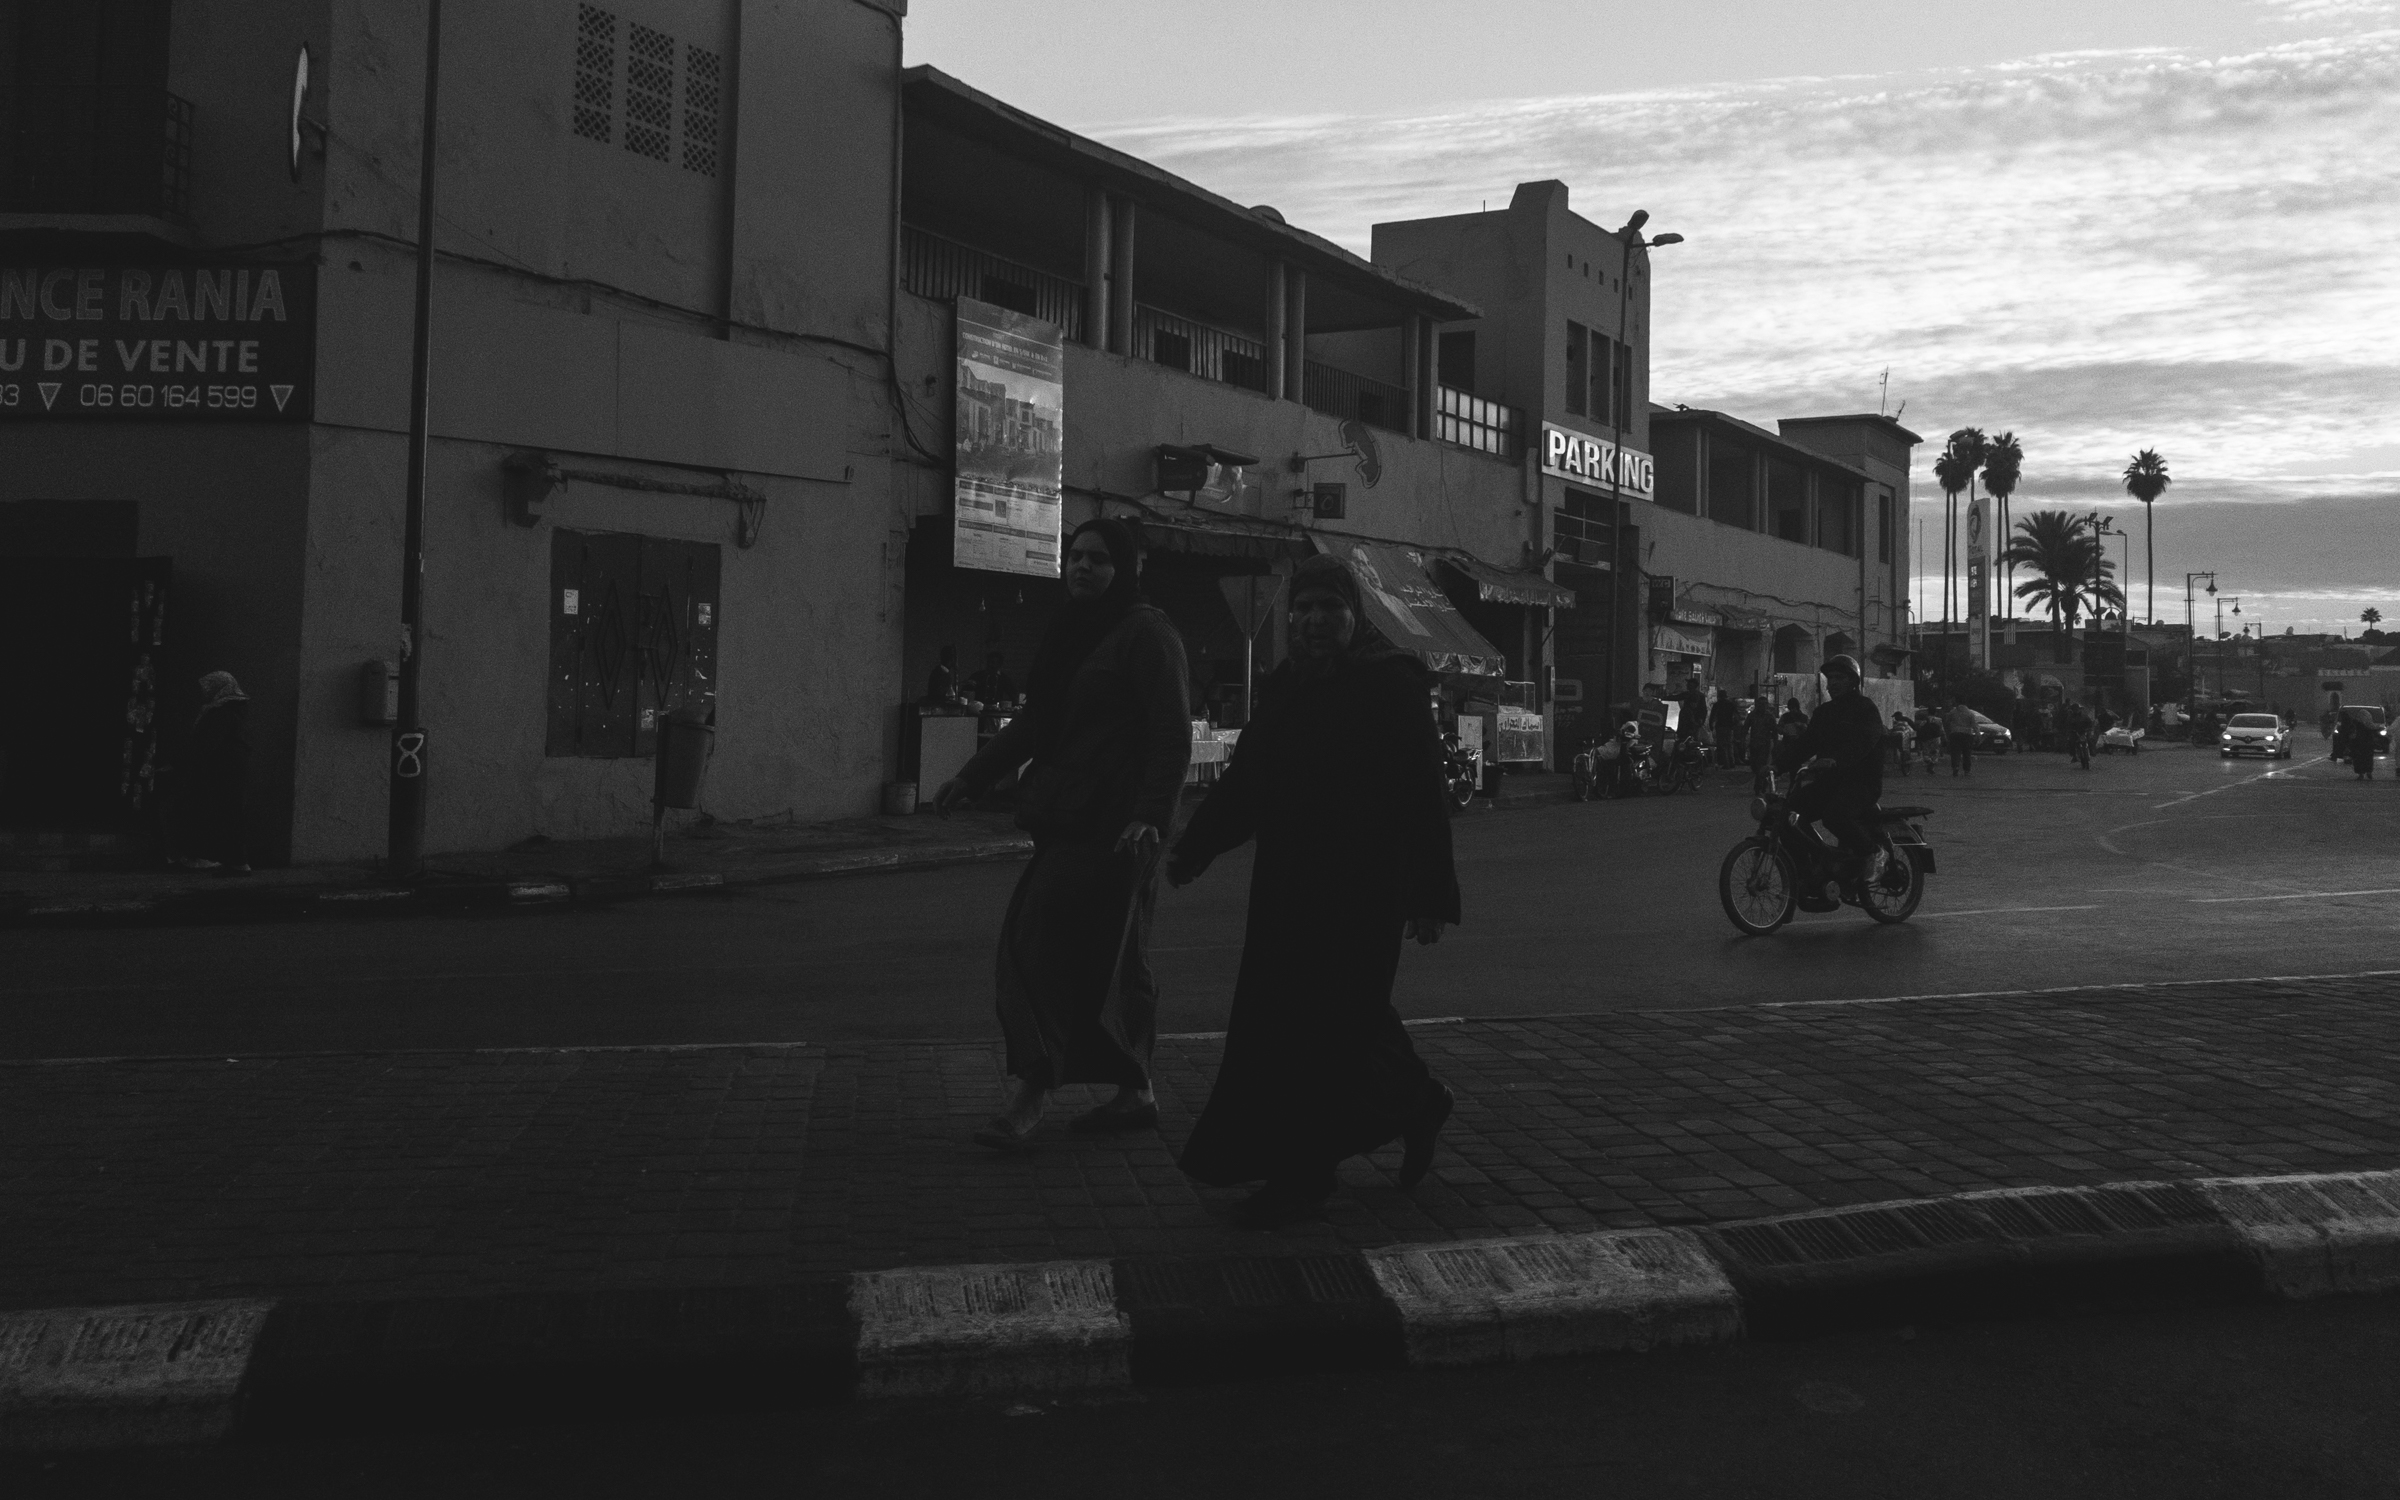 Marrakech_iPhone8+_Photos - Blog_Photos-38.jpg